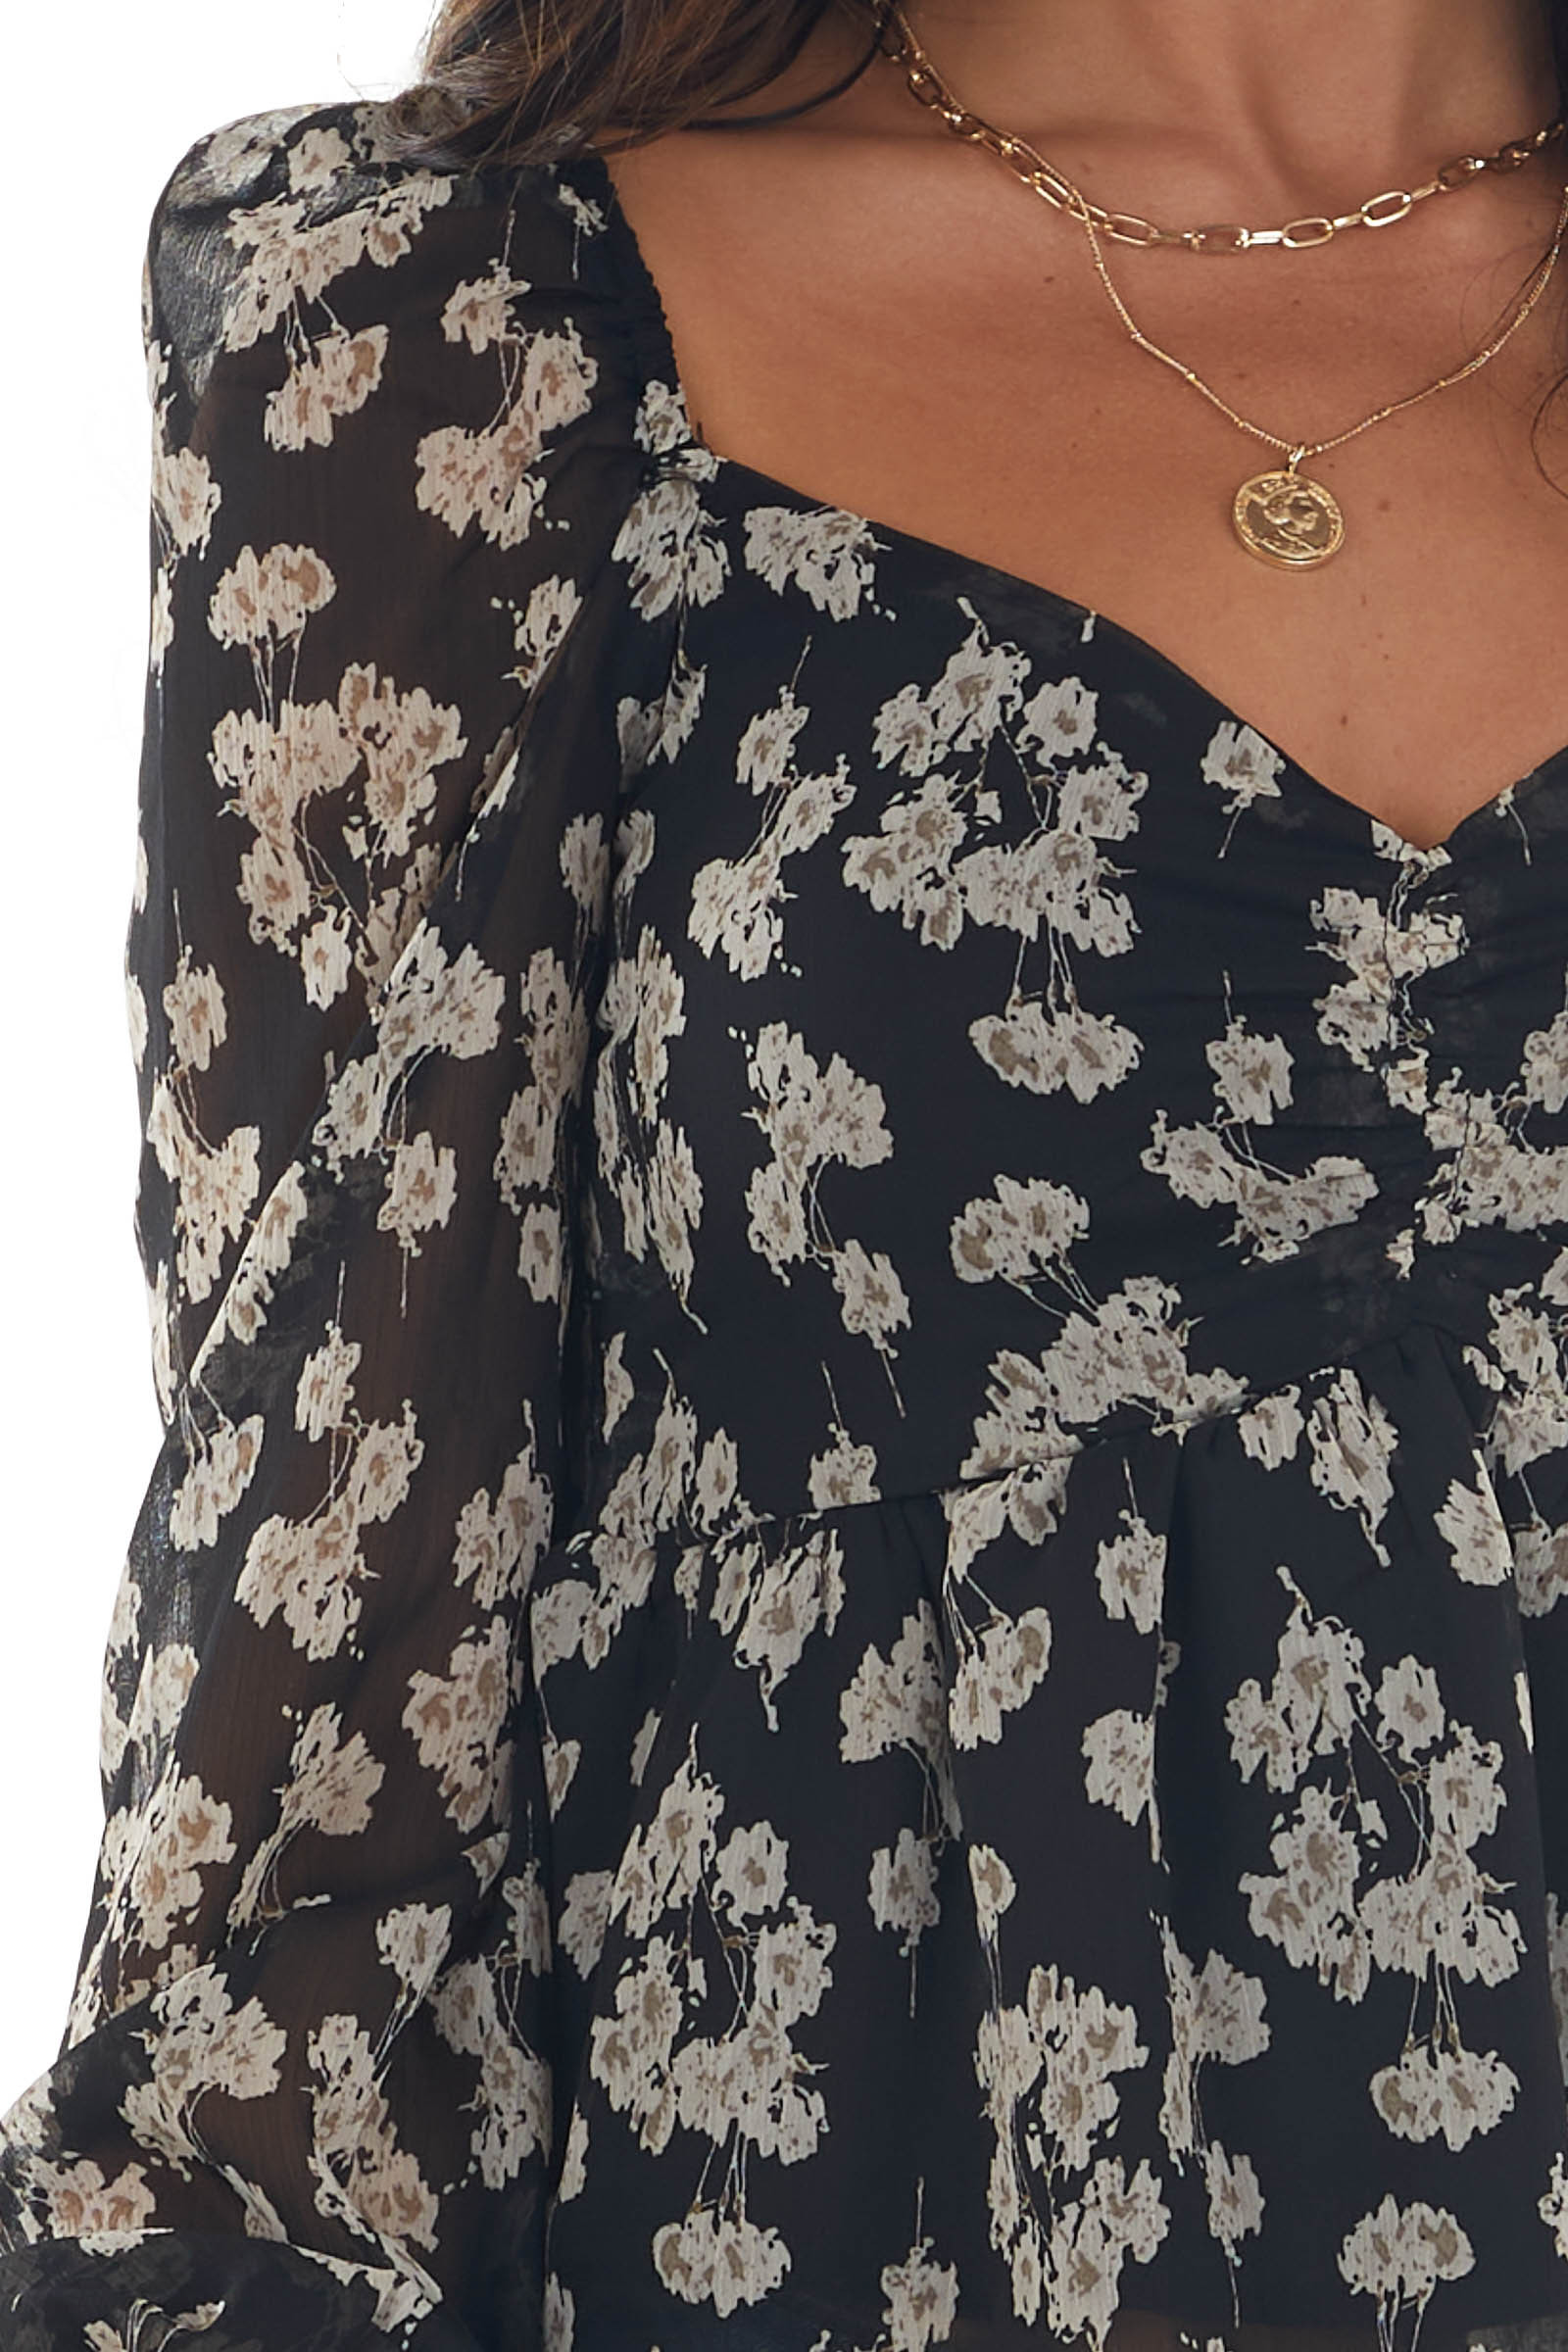 Black and Cream Floral Sheer Long Sleeve Blouse